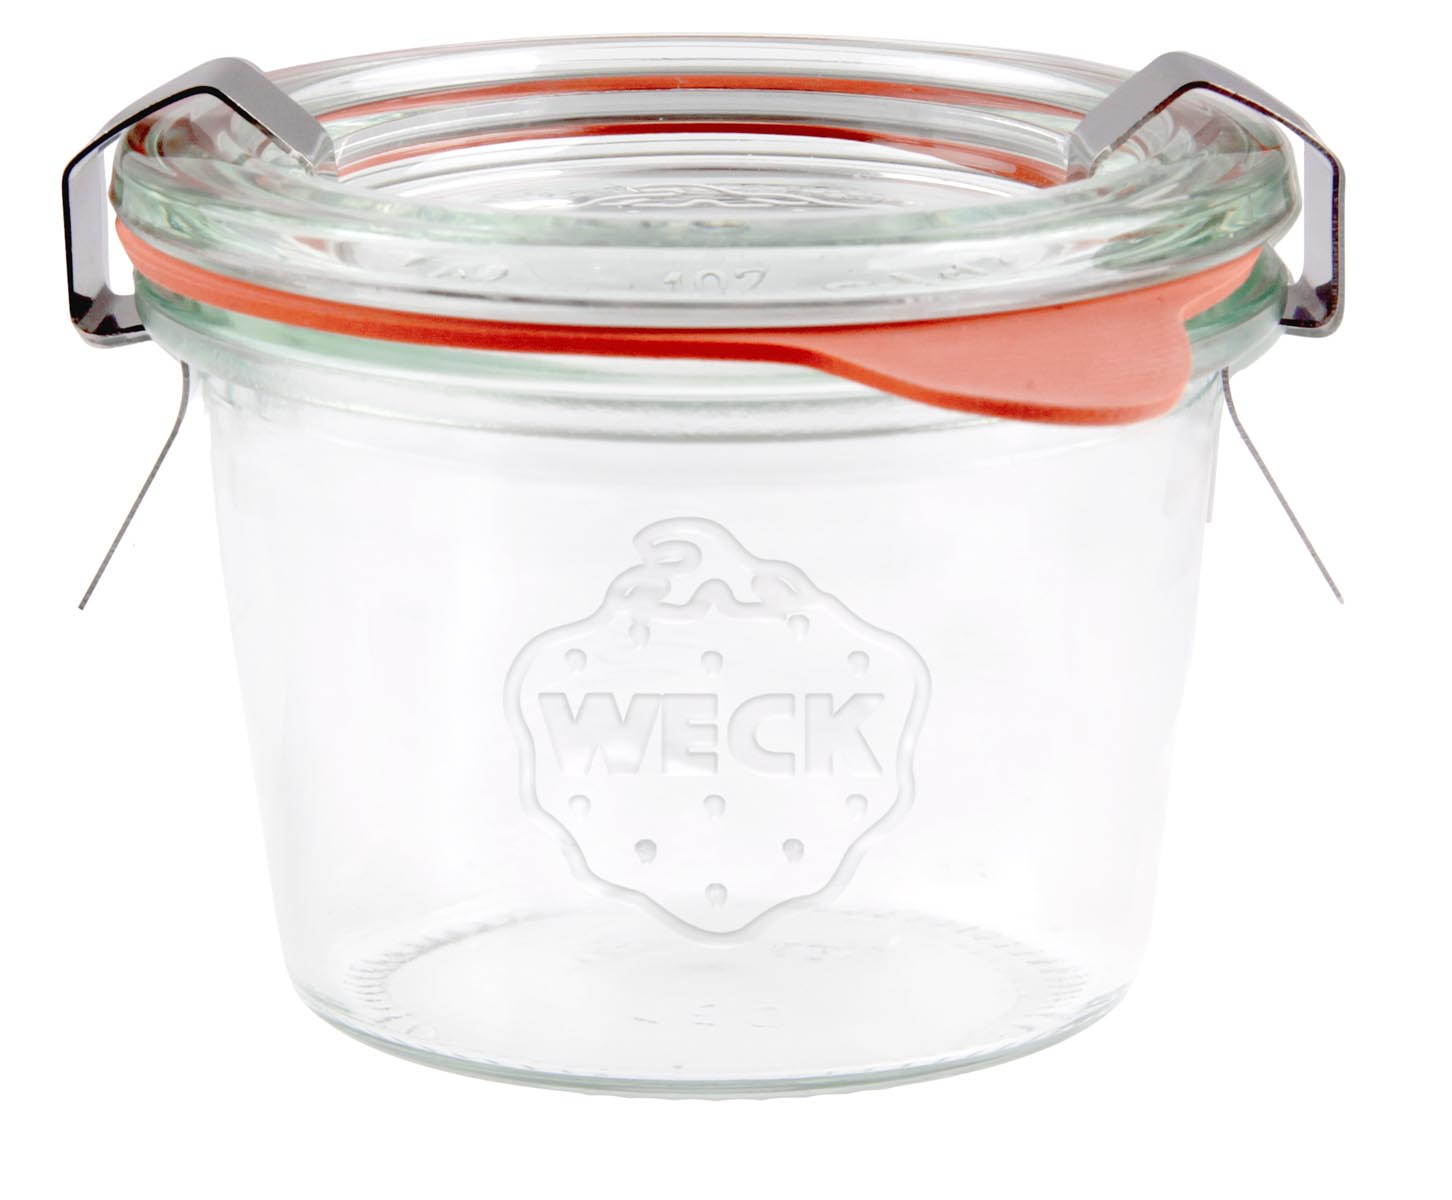 Bocal Plastique Mini Bocal Conique Weck 80 Ml Pots Complets Pots Weck